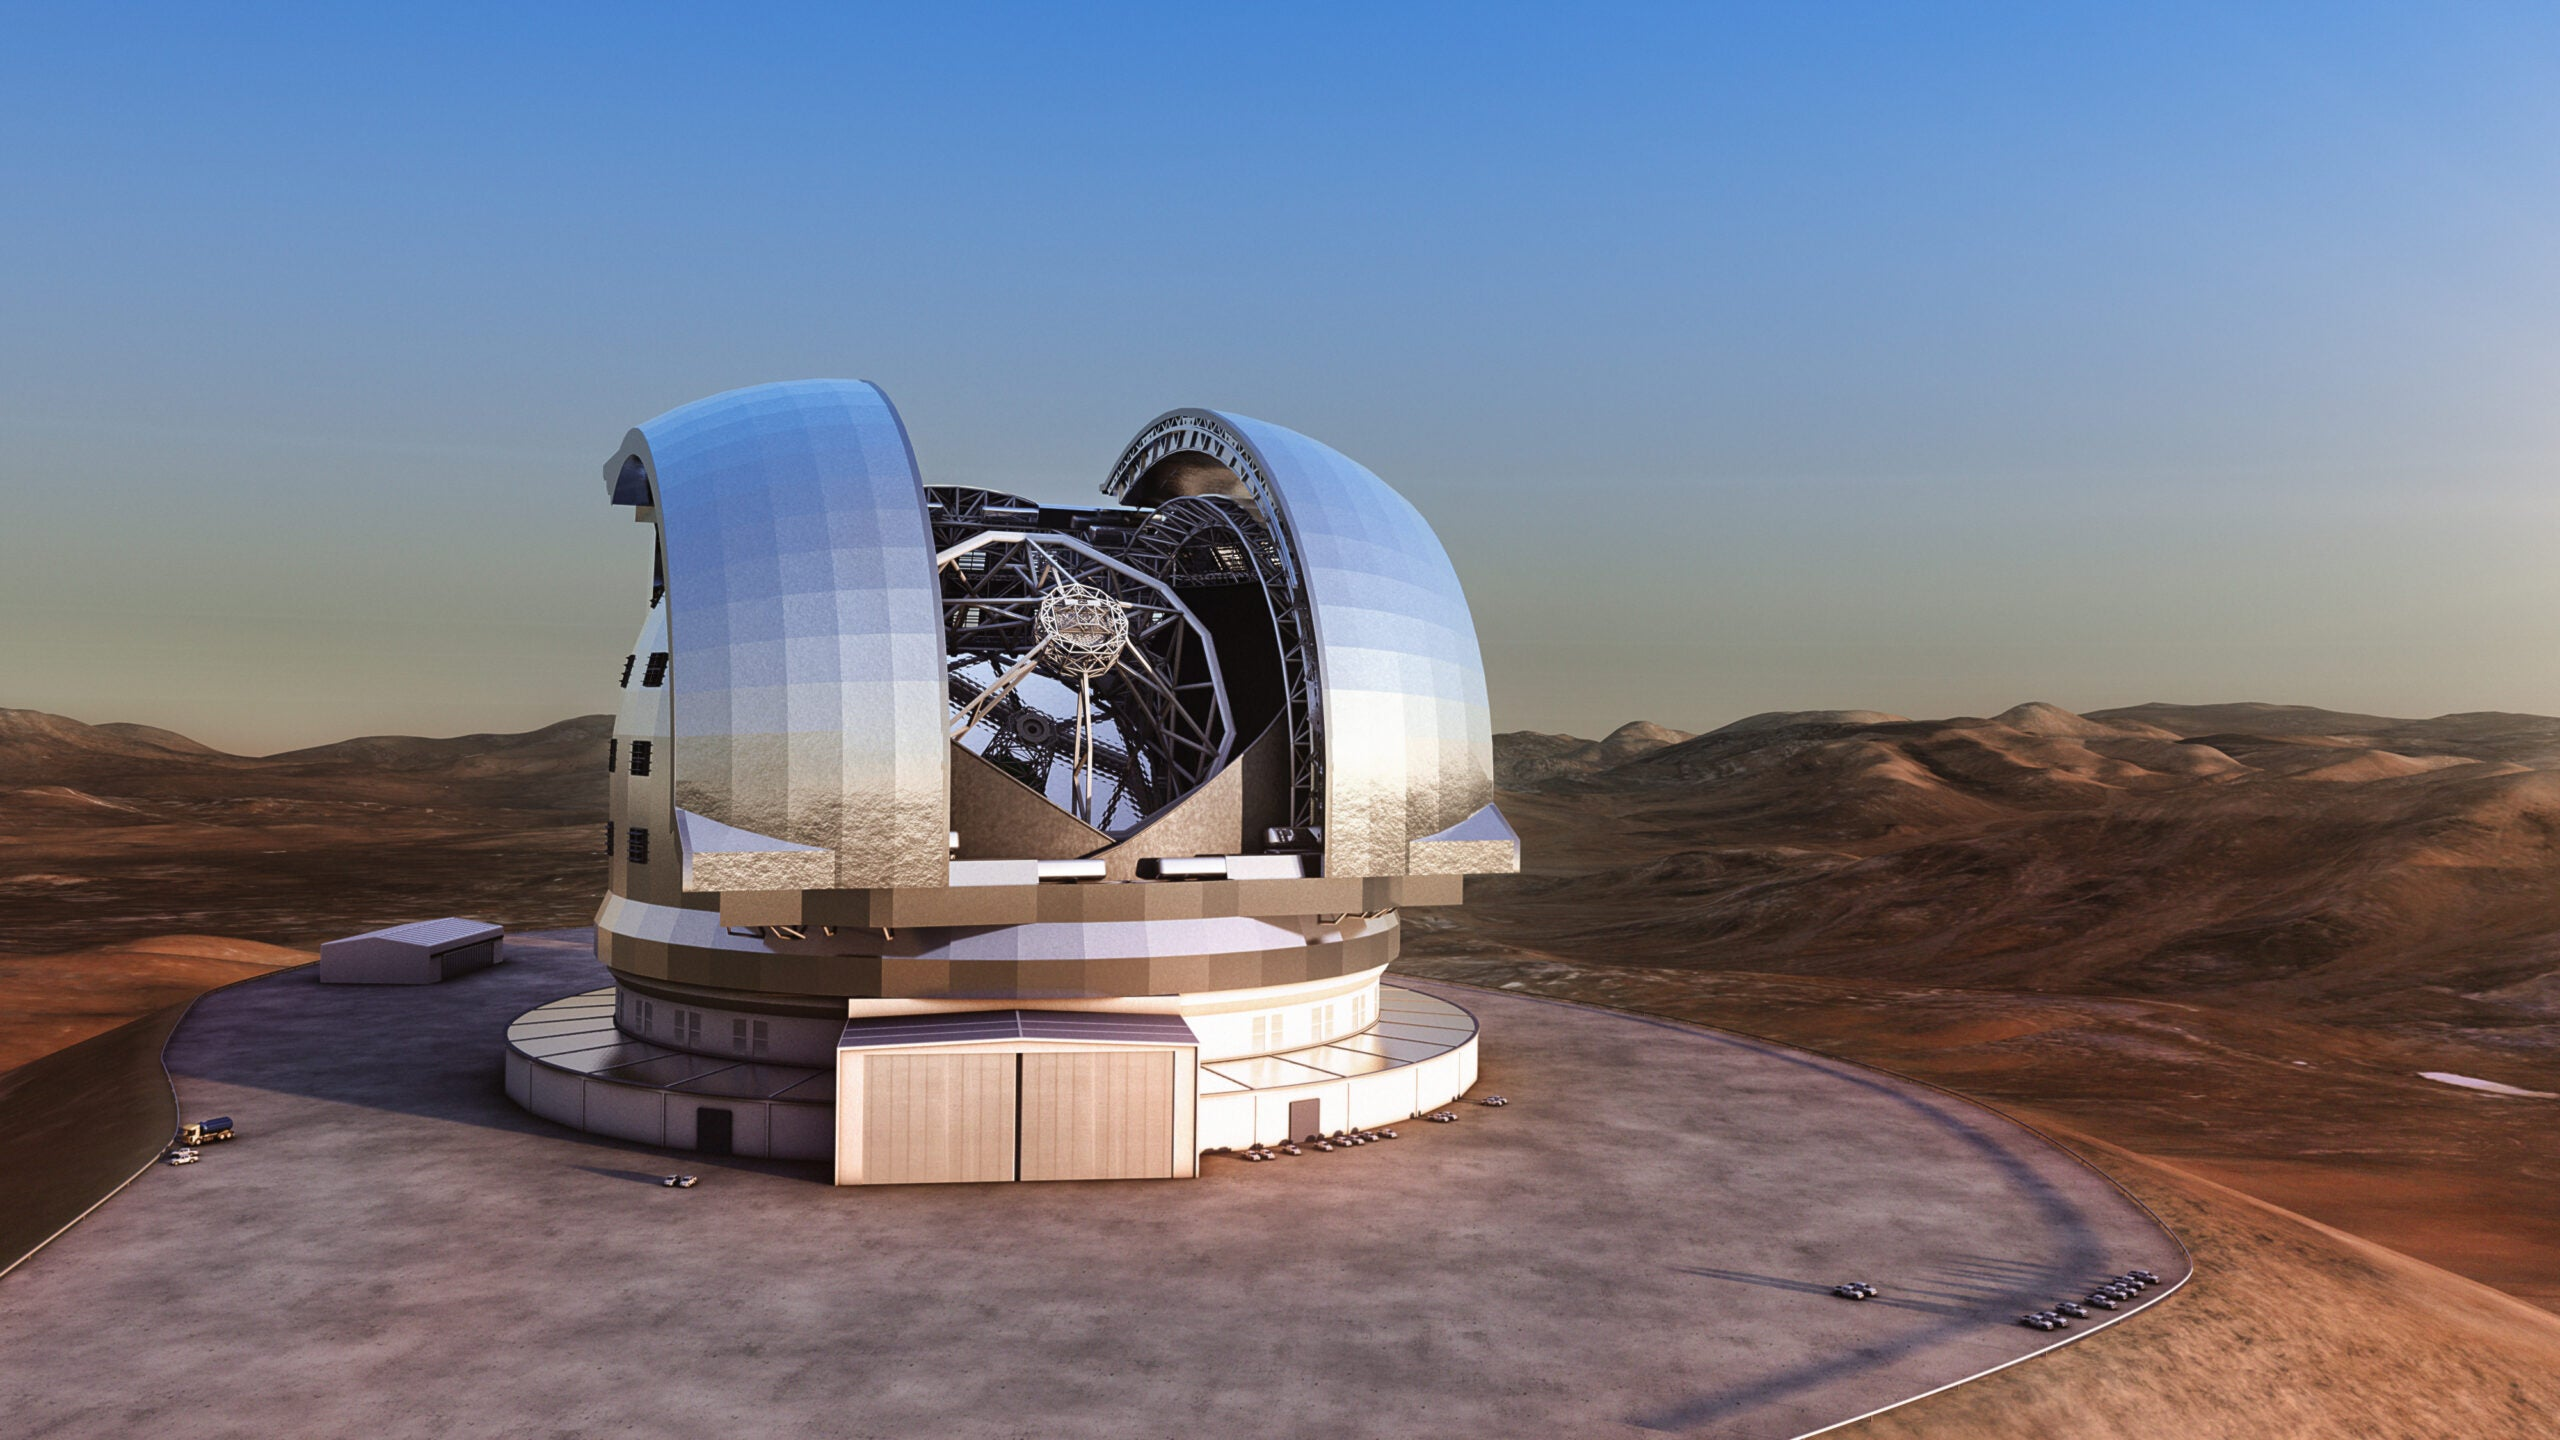 These Next-Gen Telescopes Will Peer Into The Deep History Of The Universe